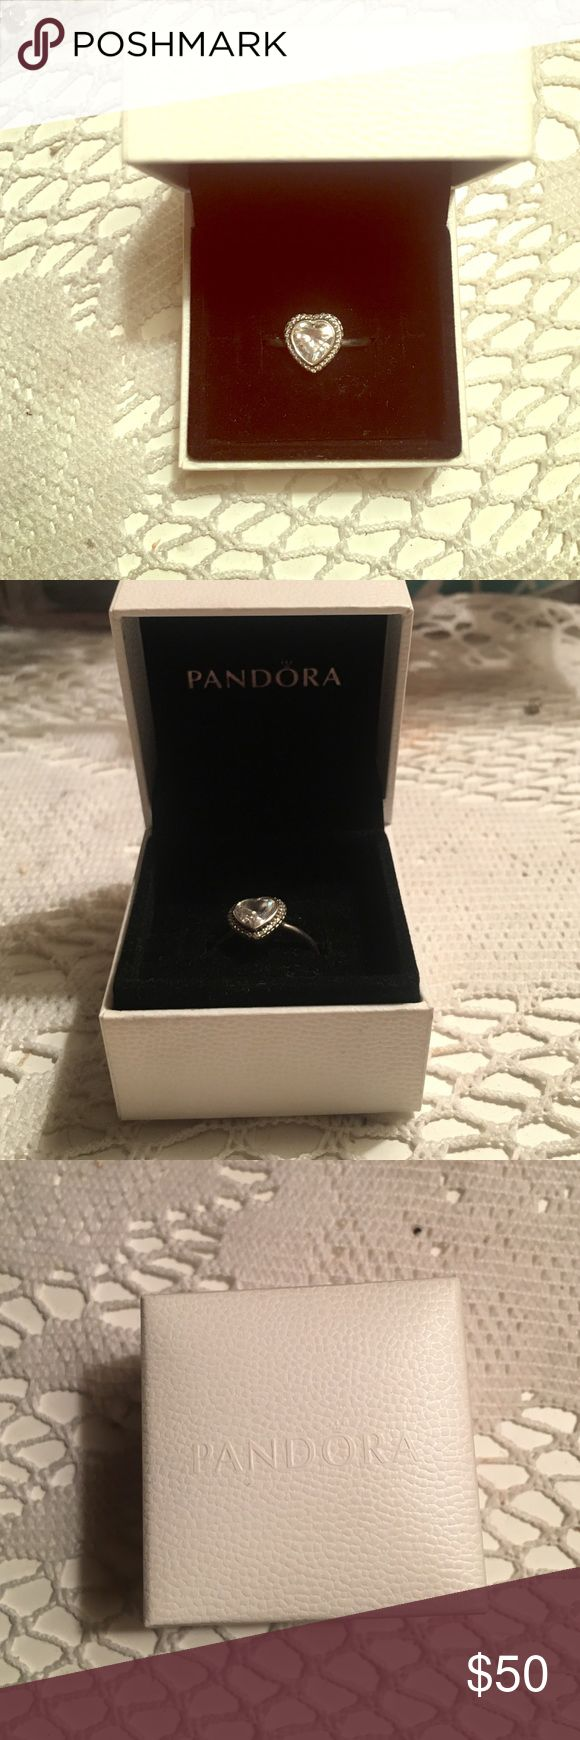 Pandora Sparking Love Heart Ring! A large heart-shaped cubic zirconia framed by a halo of tiny cubic zirconia stones makes this sterling silver ring an elegant statement piece for both every day and special occasions. Kept in very good condition! Pandora Jewelry Rings